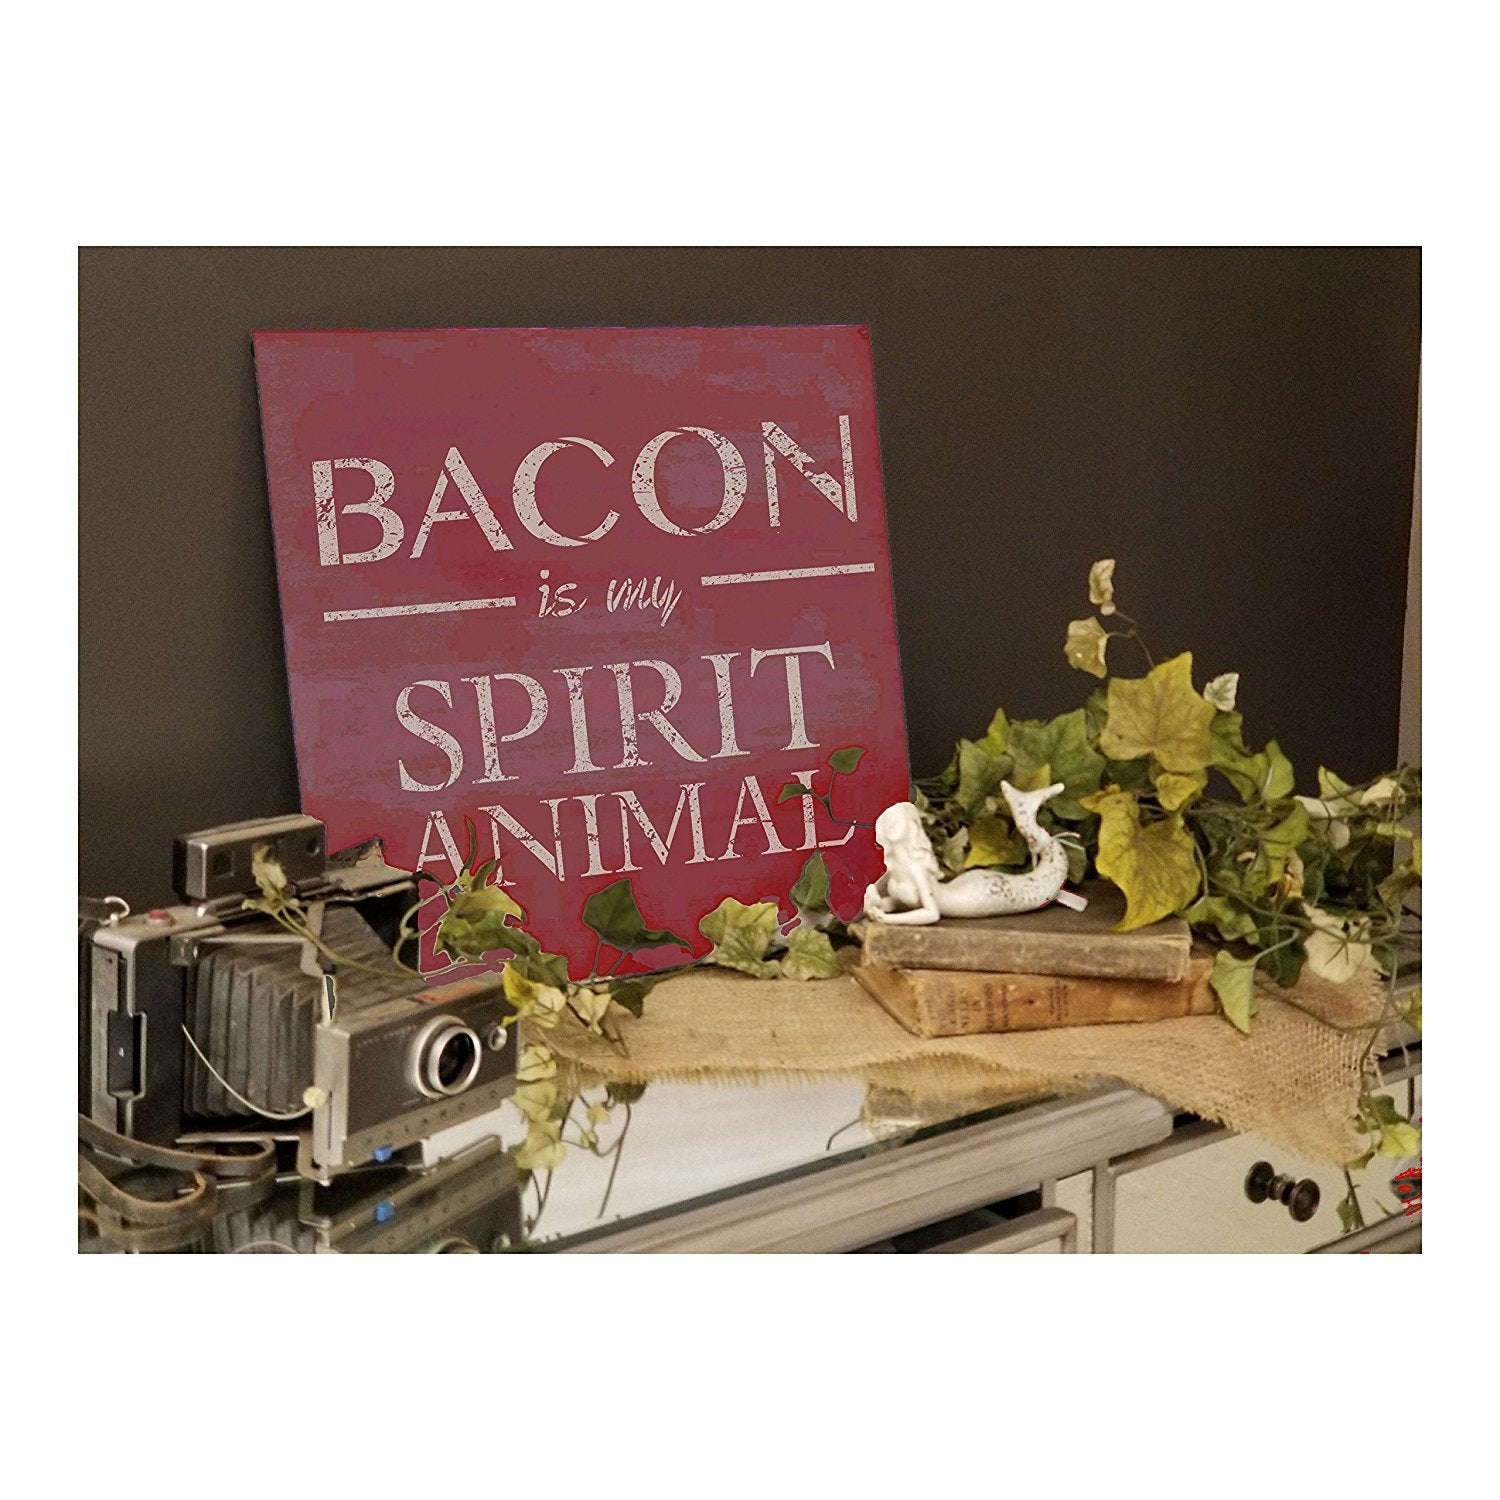 Bacon Is My Spirit Animal Stencil by StudioR12 | Breakfast Food Word Art - Reusable Mylar Template | Painting, Chalk, Mixed Media | Use for Wood Sign, Kitchen, Restaurant, DIY Home Decor SELECT SIZE